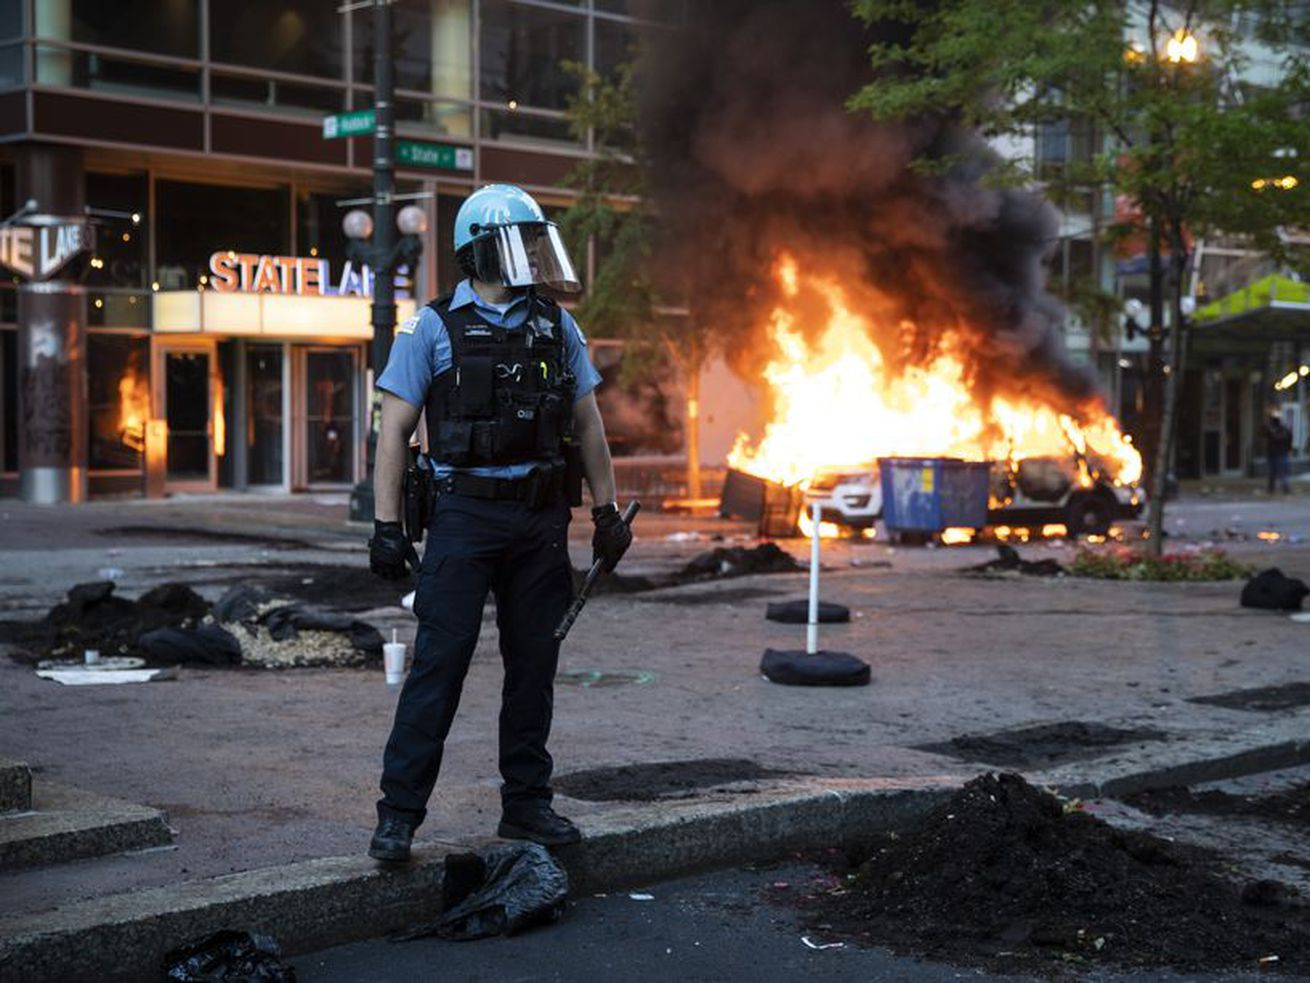 A Chicago Police Department SUV burns near State and Lake streets in the Loop on May 30, 2020, as thousands of protesters in Chicago joined national outrage over the killing of George Floyd in Minneapolis police custody.